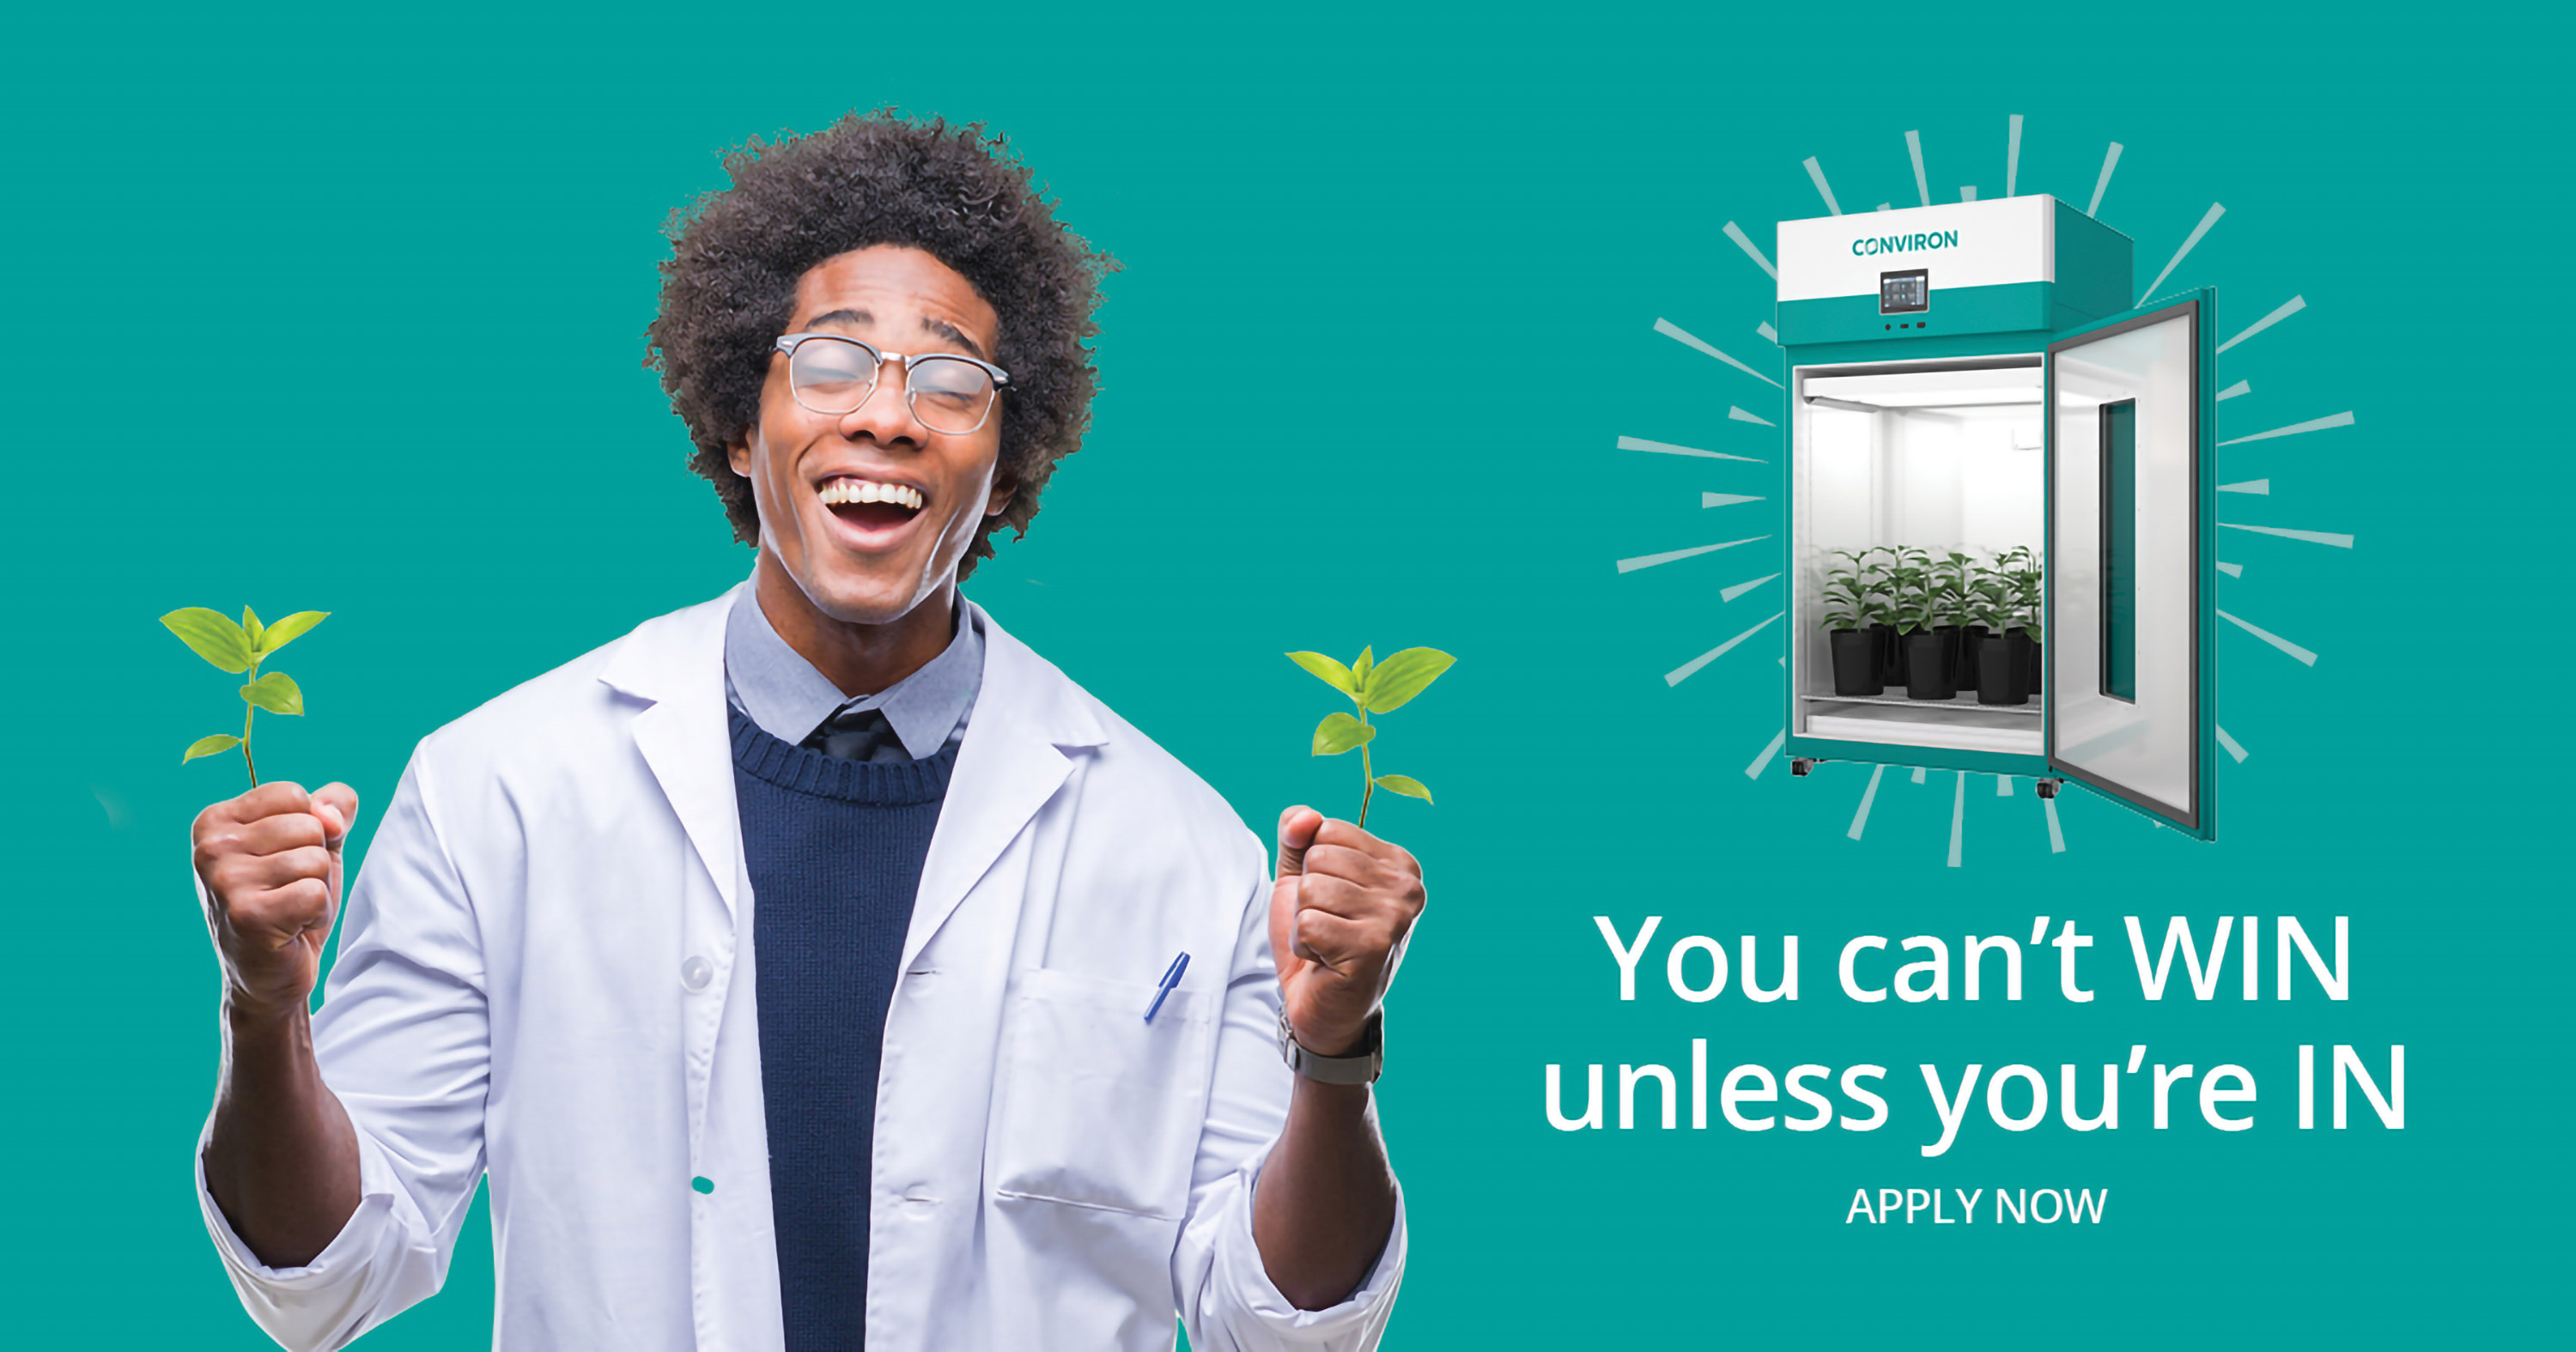 Conviron plant-growth chamber Facebook campaign designed by 6P Marketing